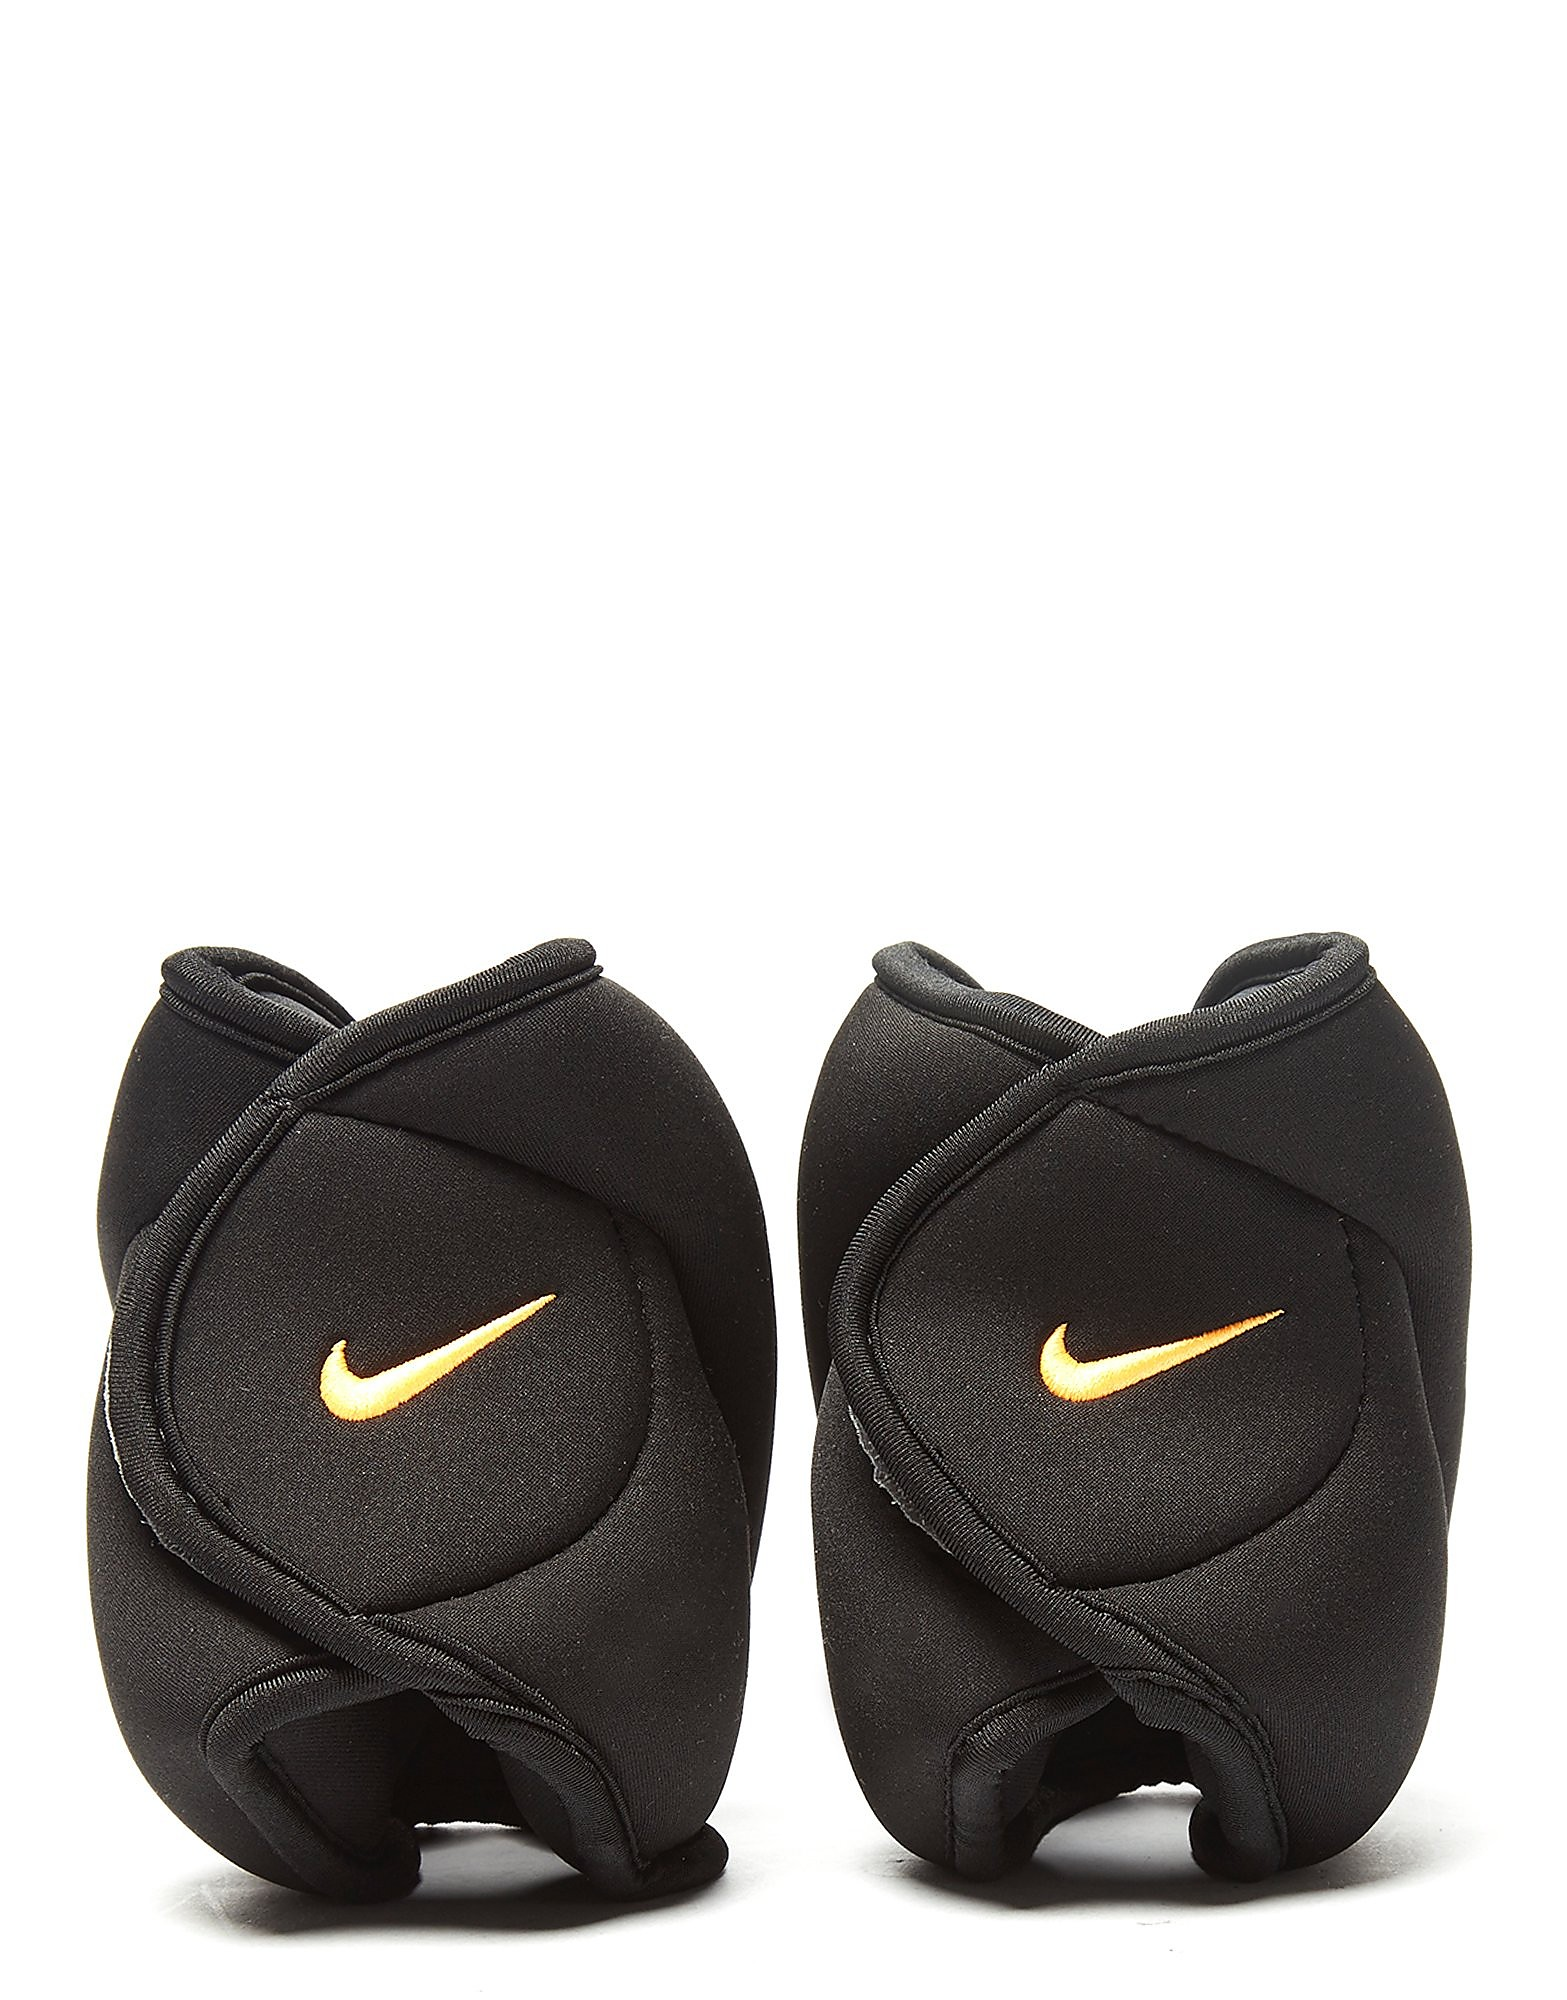 Nike 5.5lb Ankle Weights